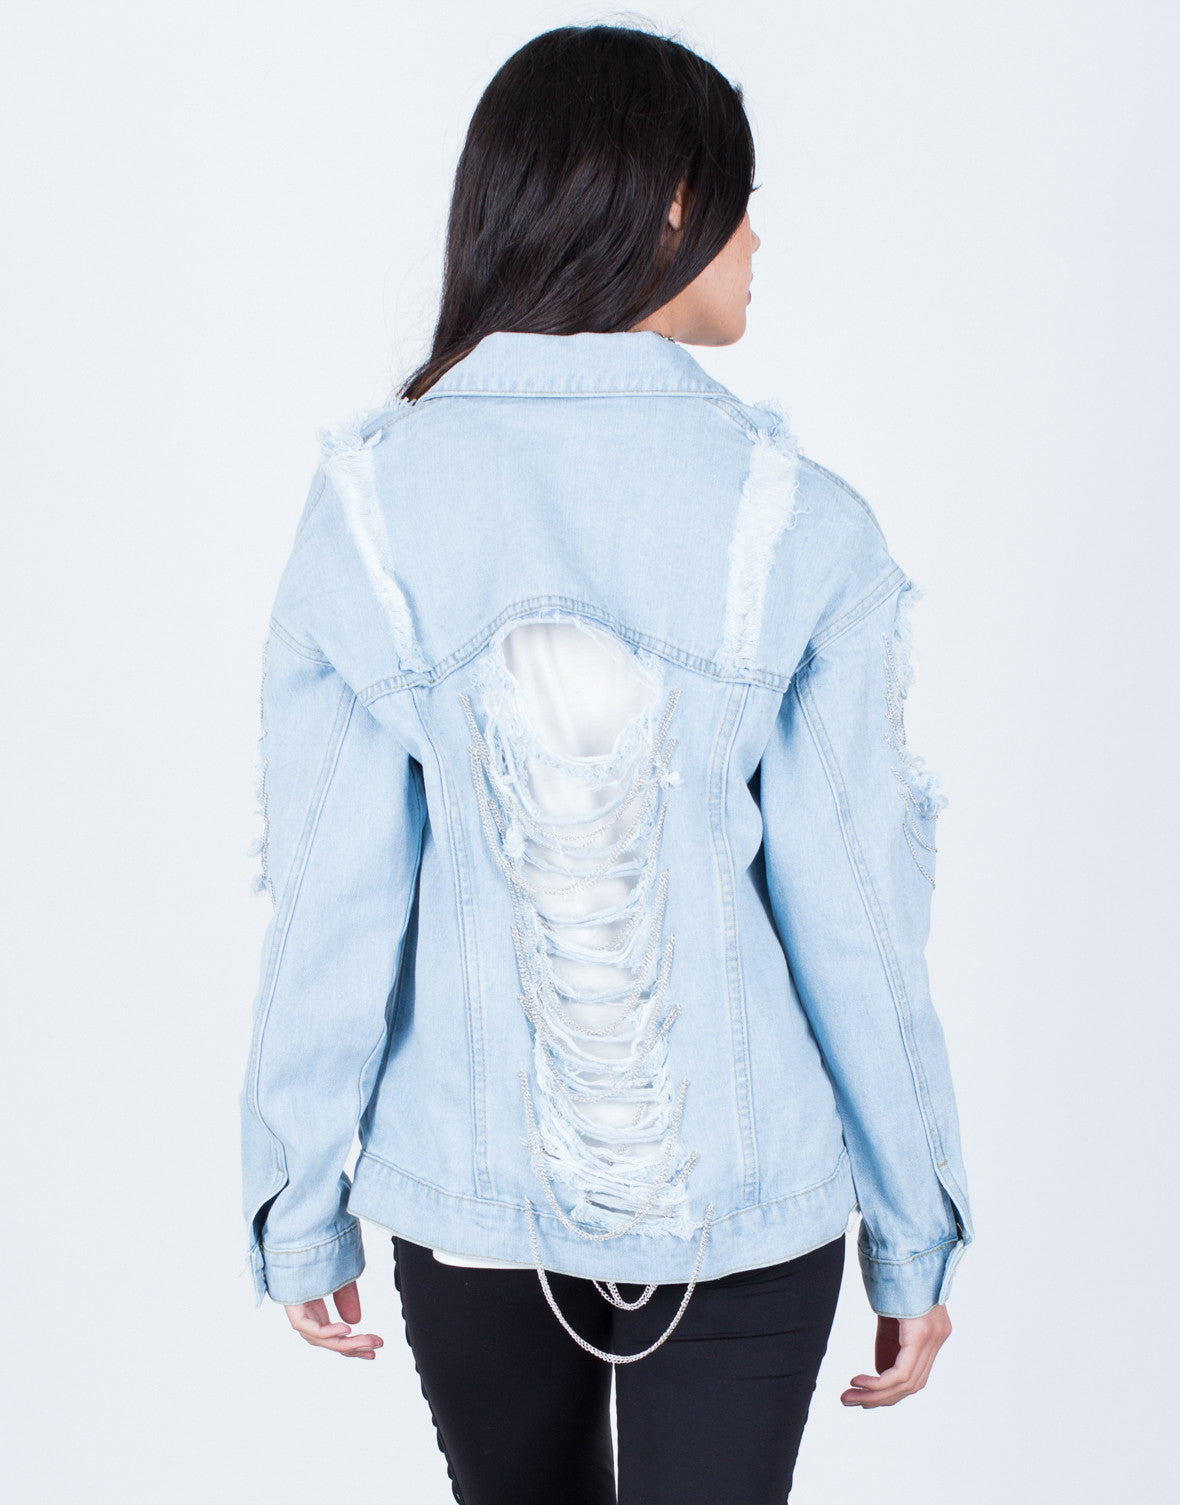 Back View of Chained Denim Jacket